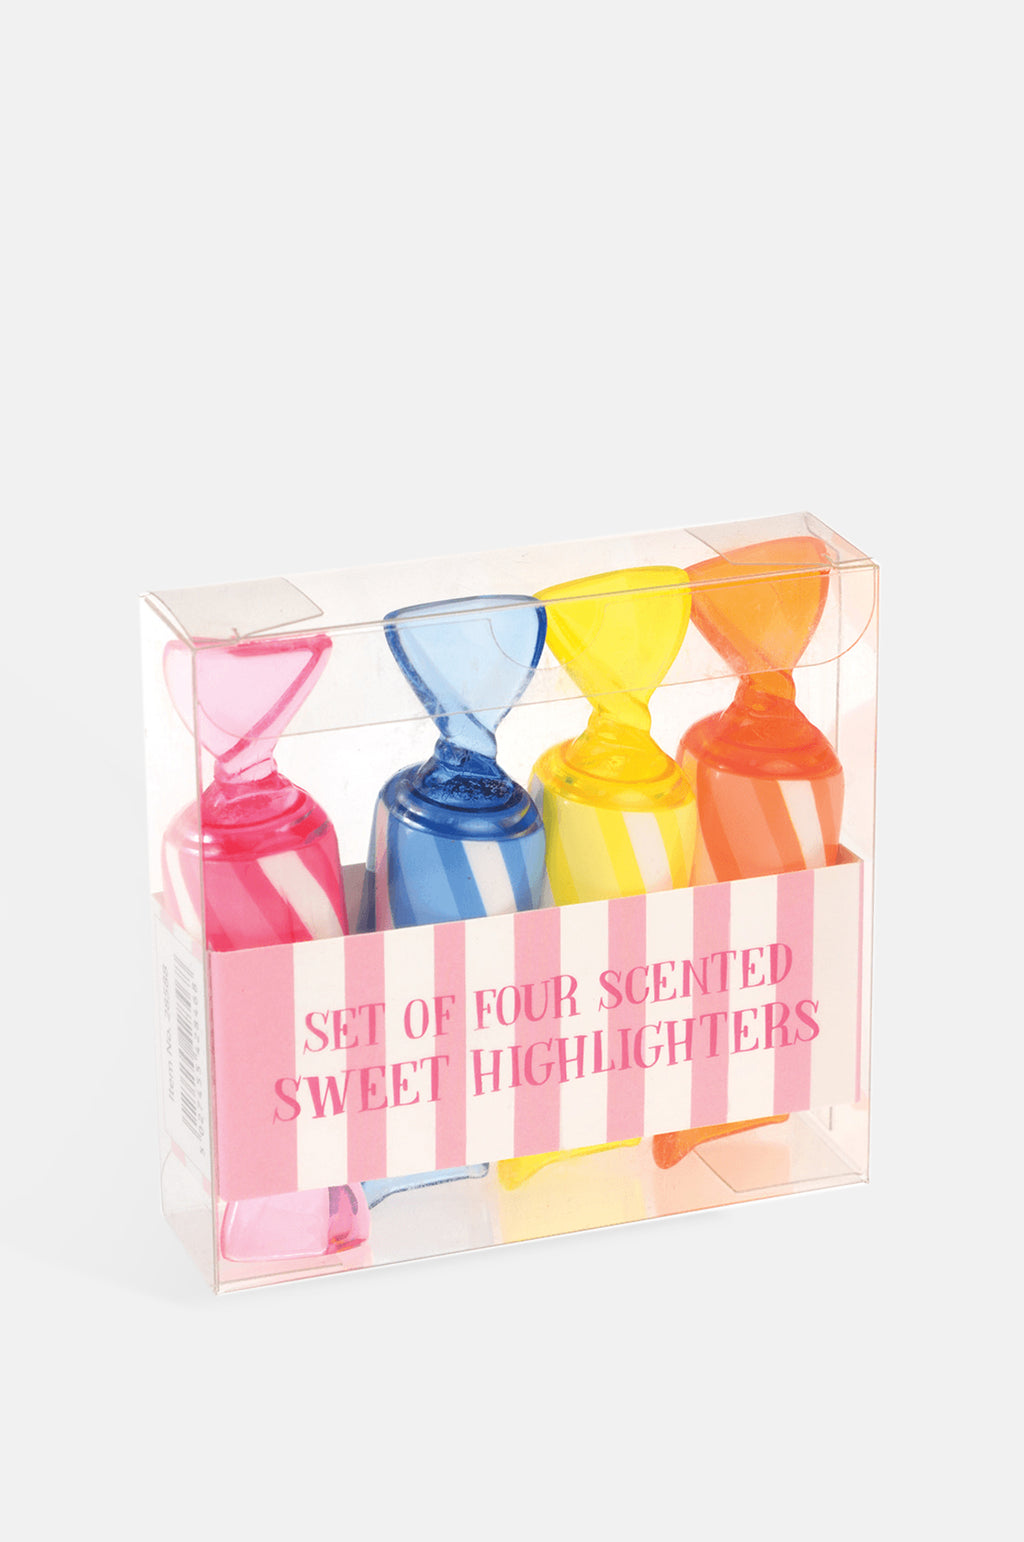 Scented Sweet Highlighters Set of Four